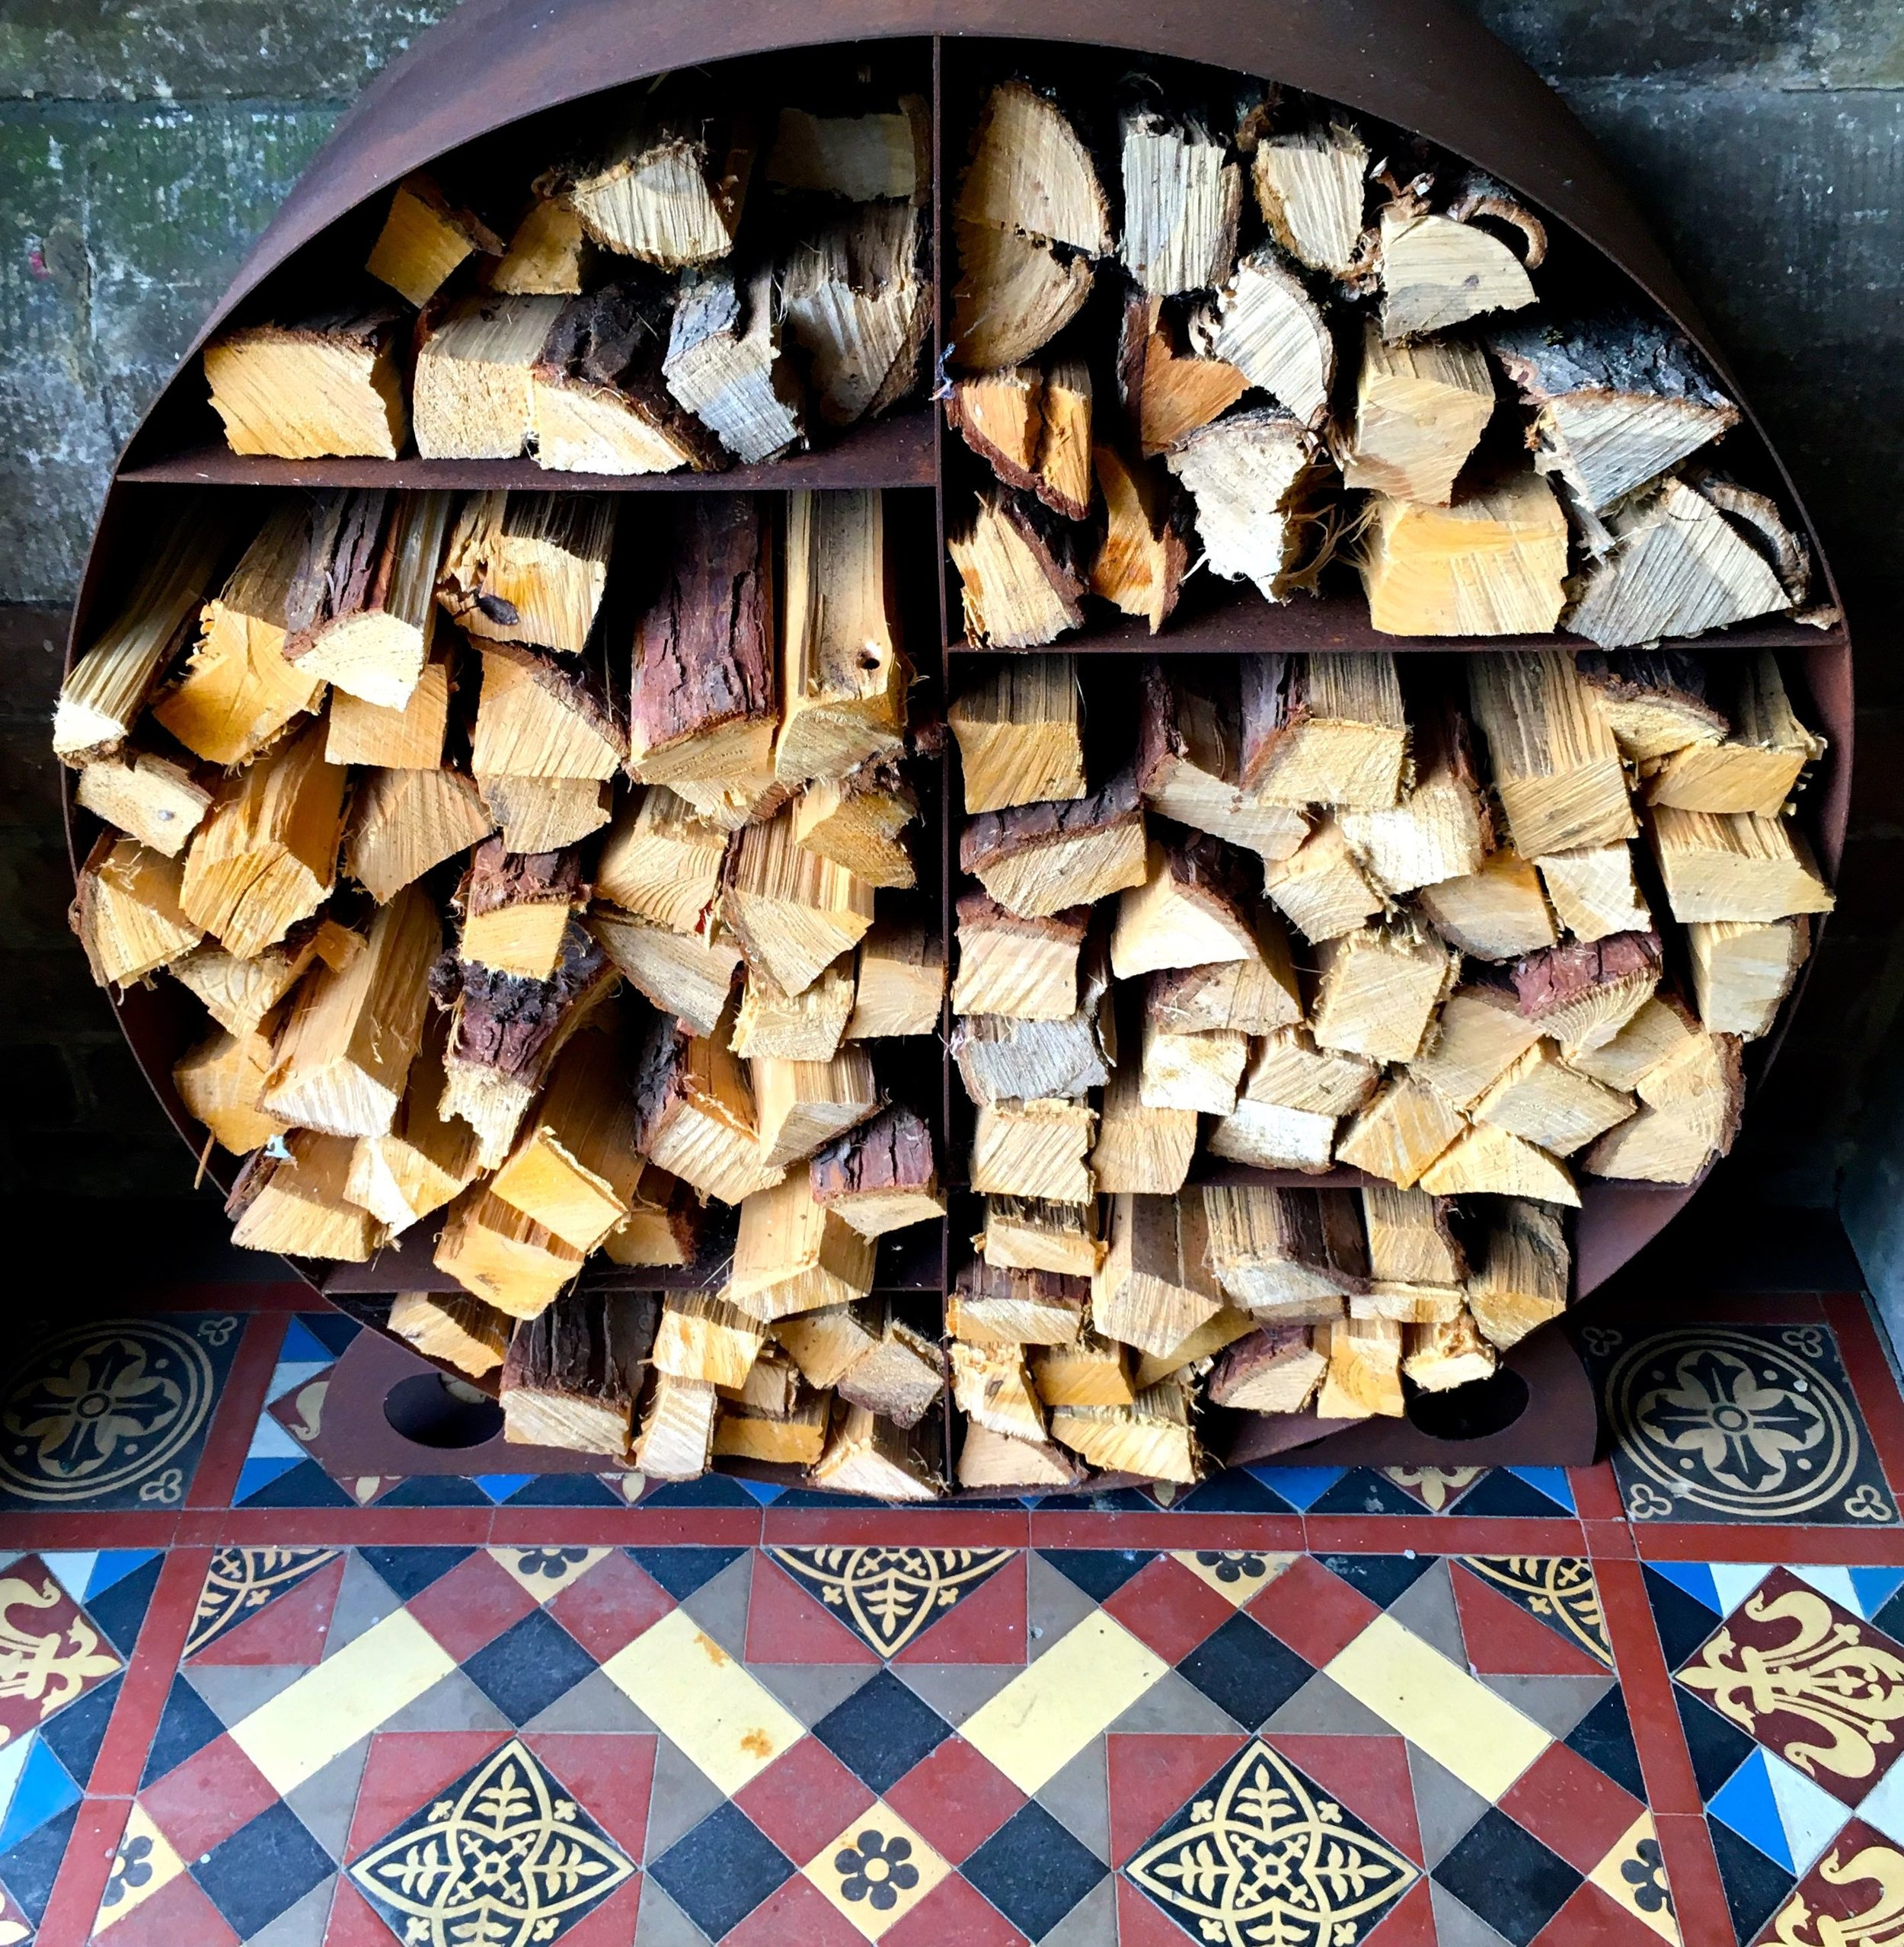 A log store and pretty tiles